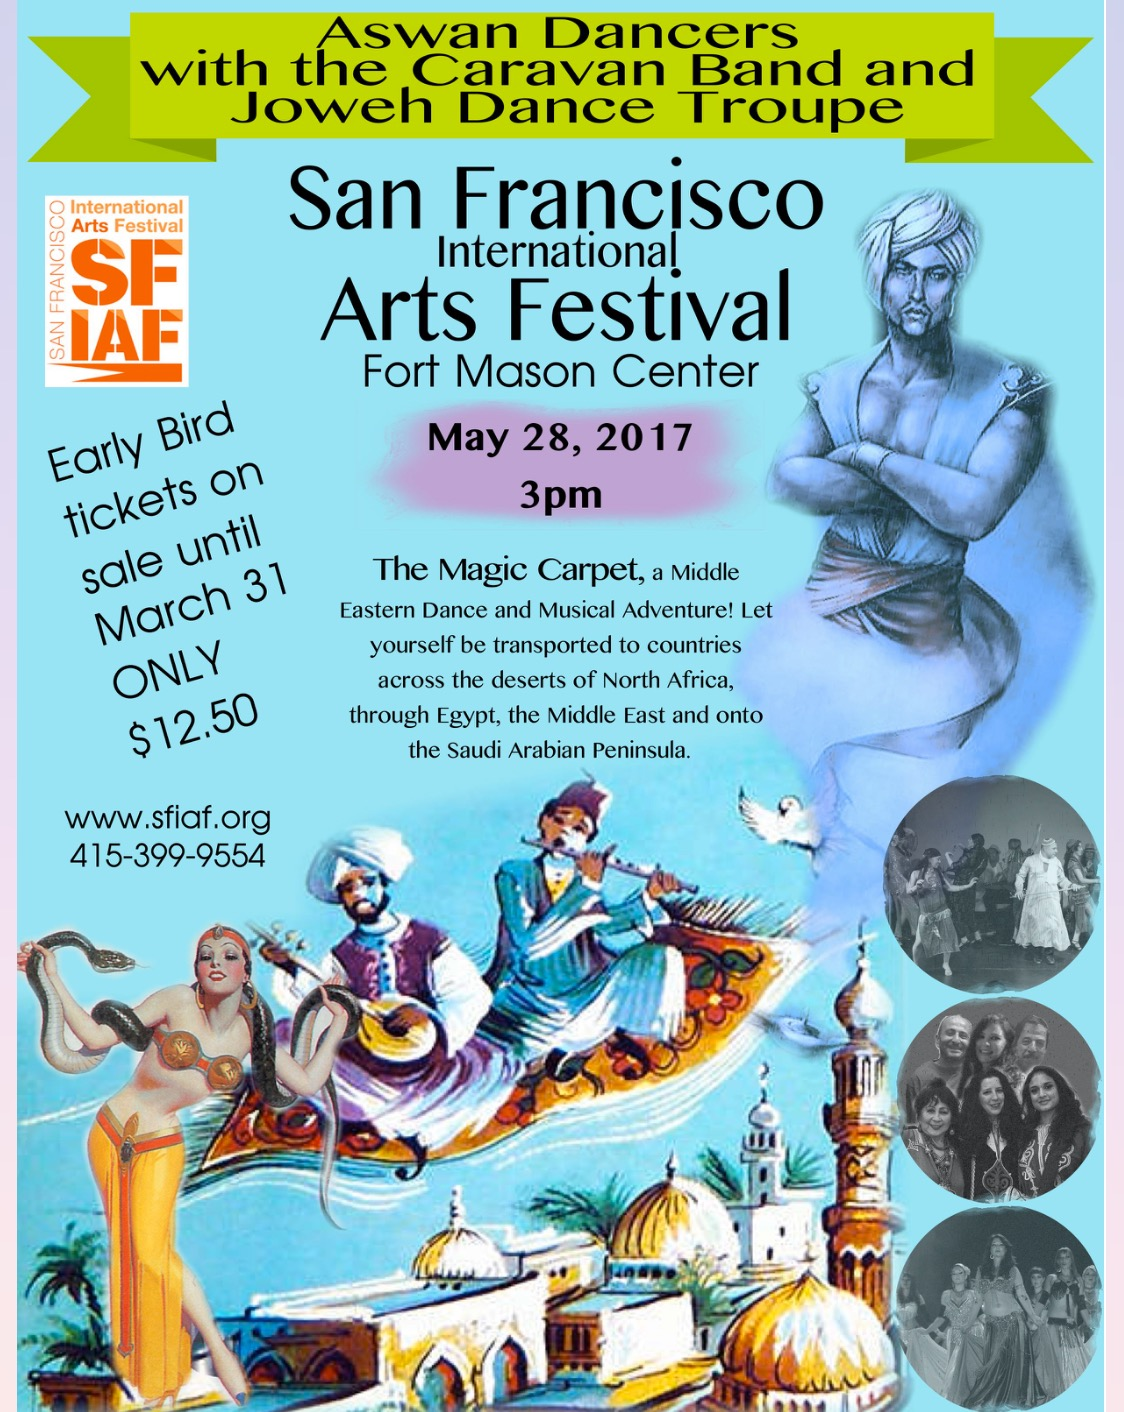 The Magic Carpet of the SFIAF Fort Mason